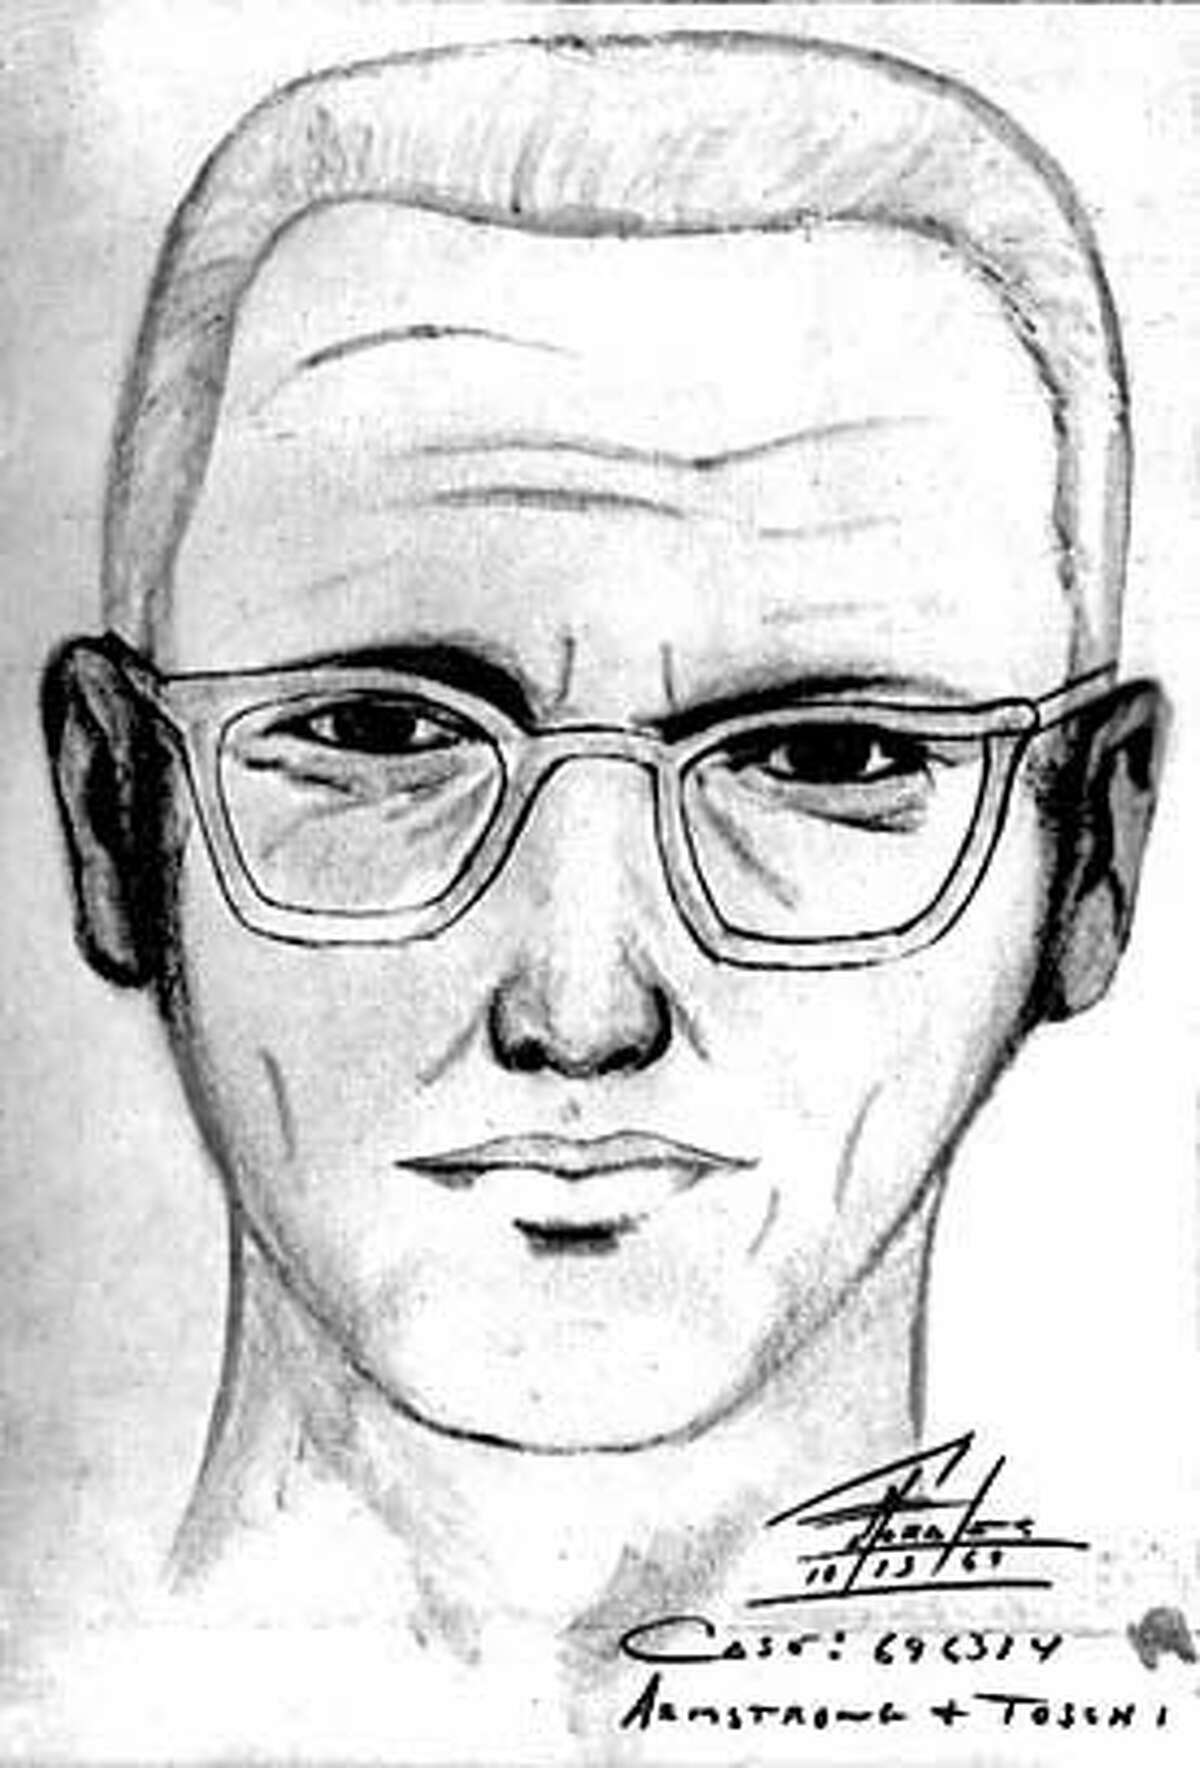 """ZODIAC-C-14DEC99-SC-HO--Police sketch of the man suspected of being the """"Zodiak Killer,"""" 1969. ##Chronicle#4/7/2004##5star##"""